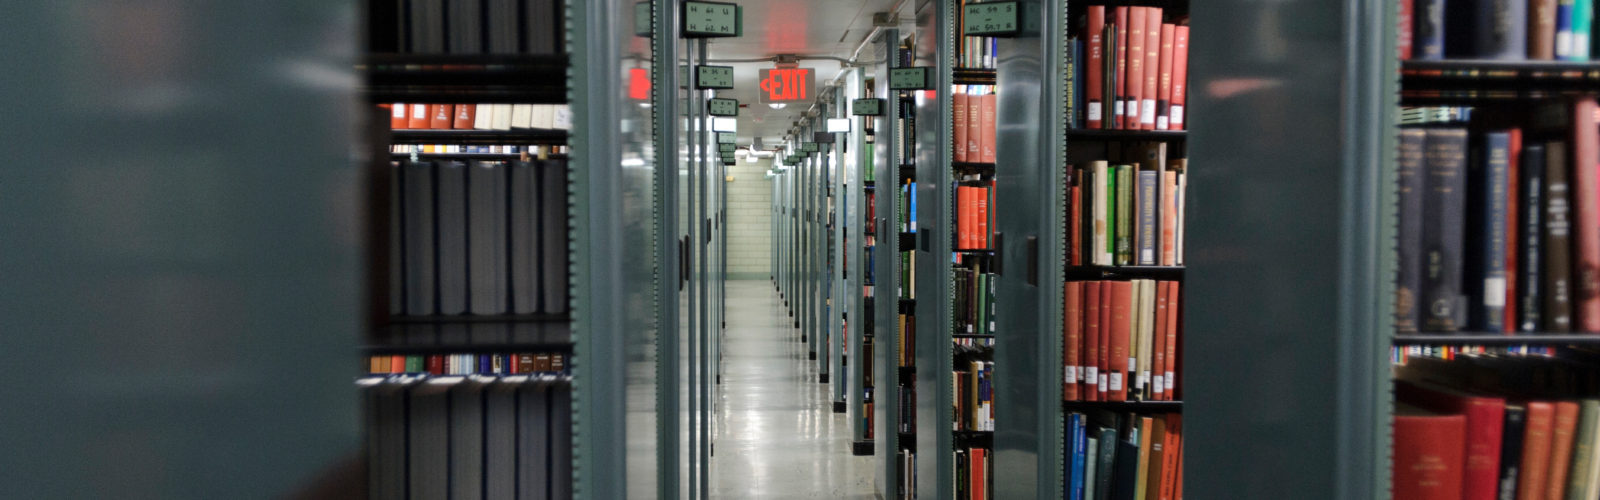 "Overhead lighting shines down upon rows of books shelved in one of the many maze-like ""stacks"" in Memorial Library at the University of Wisconsin-Madison on Sept. 18, 2013. (Photo by Jeff Miller/UW-Madison)"